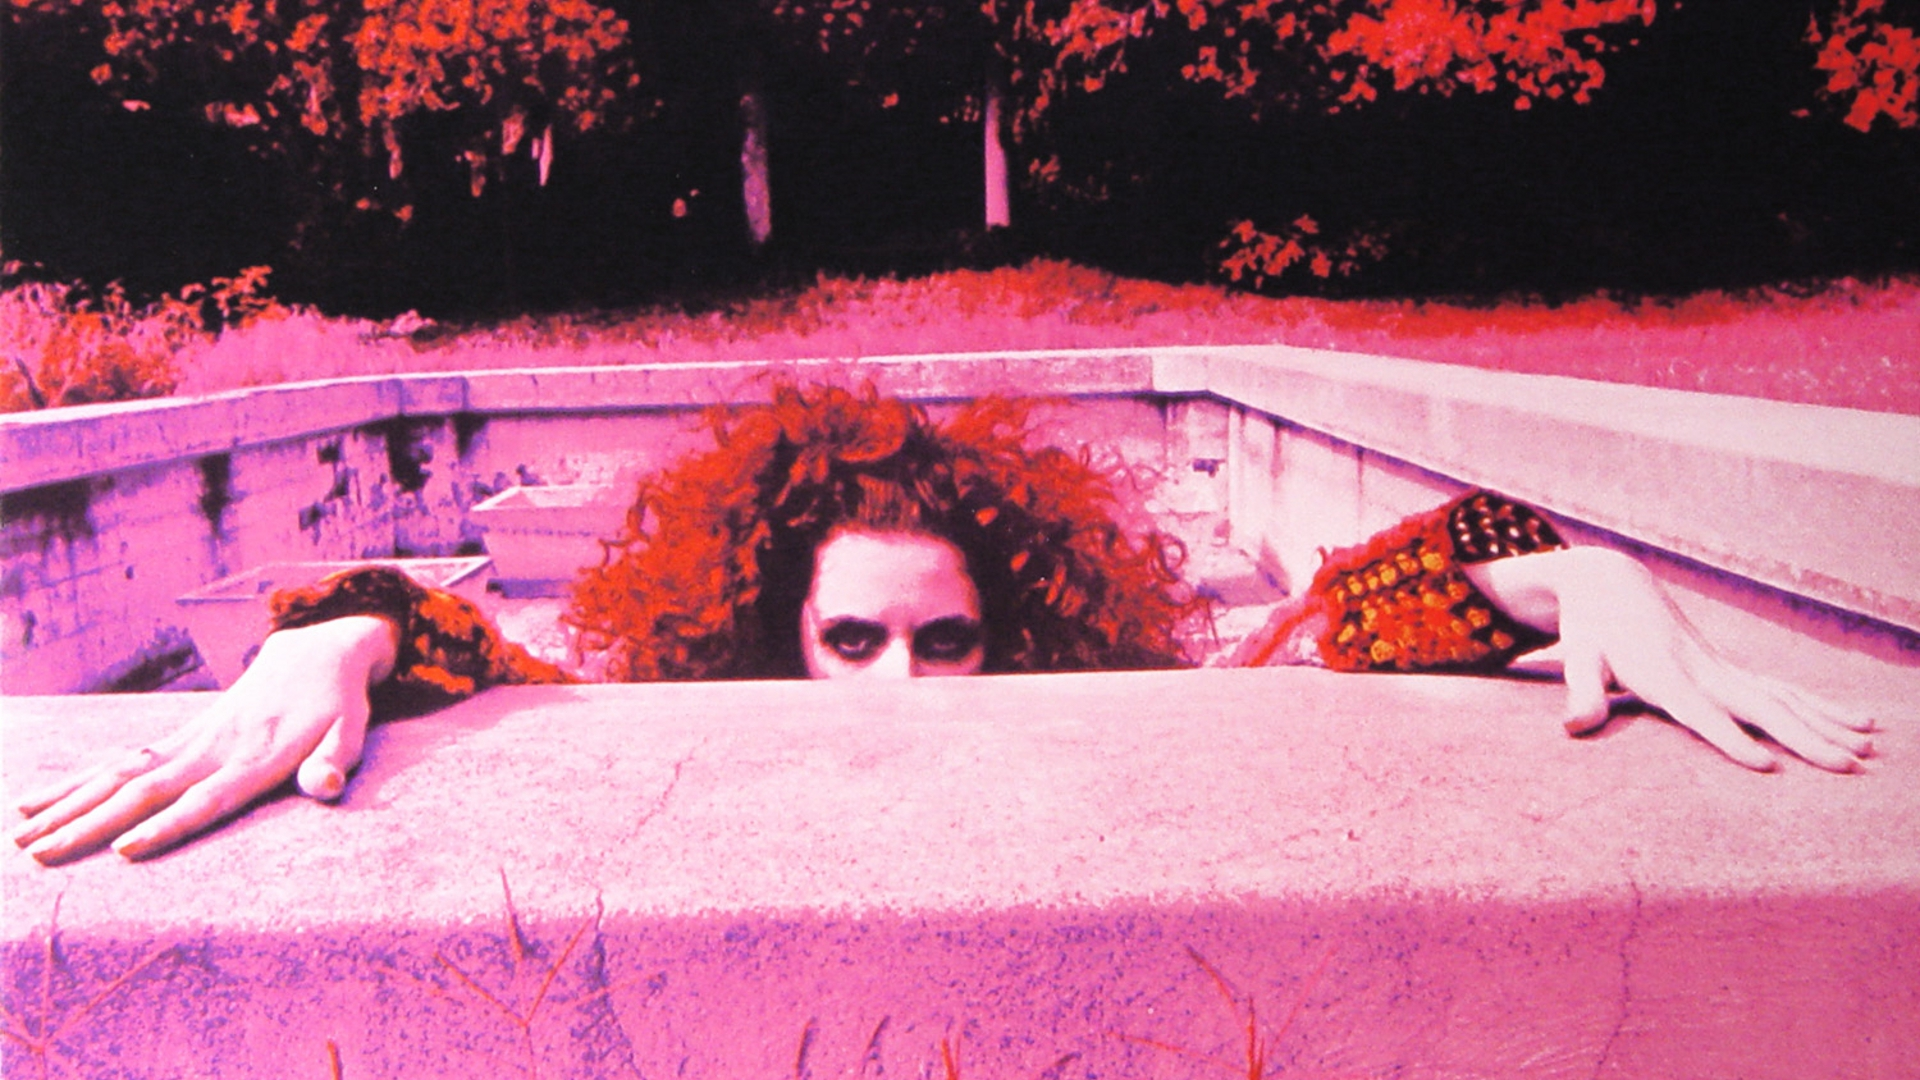 Wet Cement Wallpapers: Frank Zappa - Hot Rats 1920x1200 ...